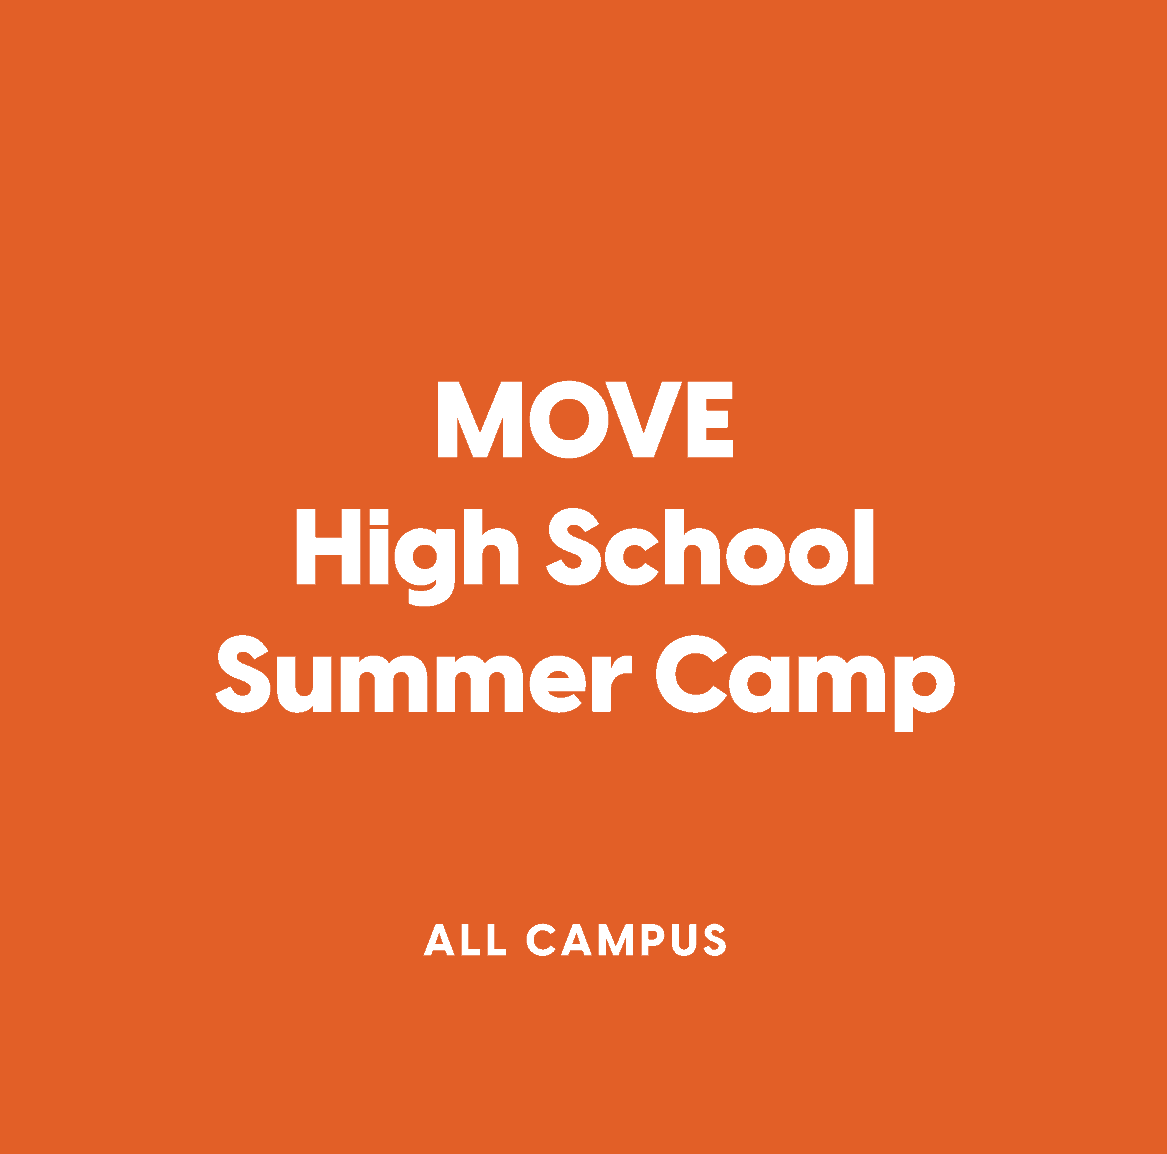 All-Campus MOVE High School Summer Camp